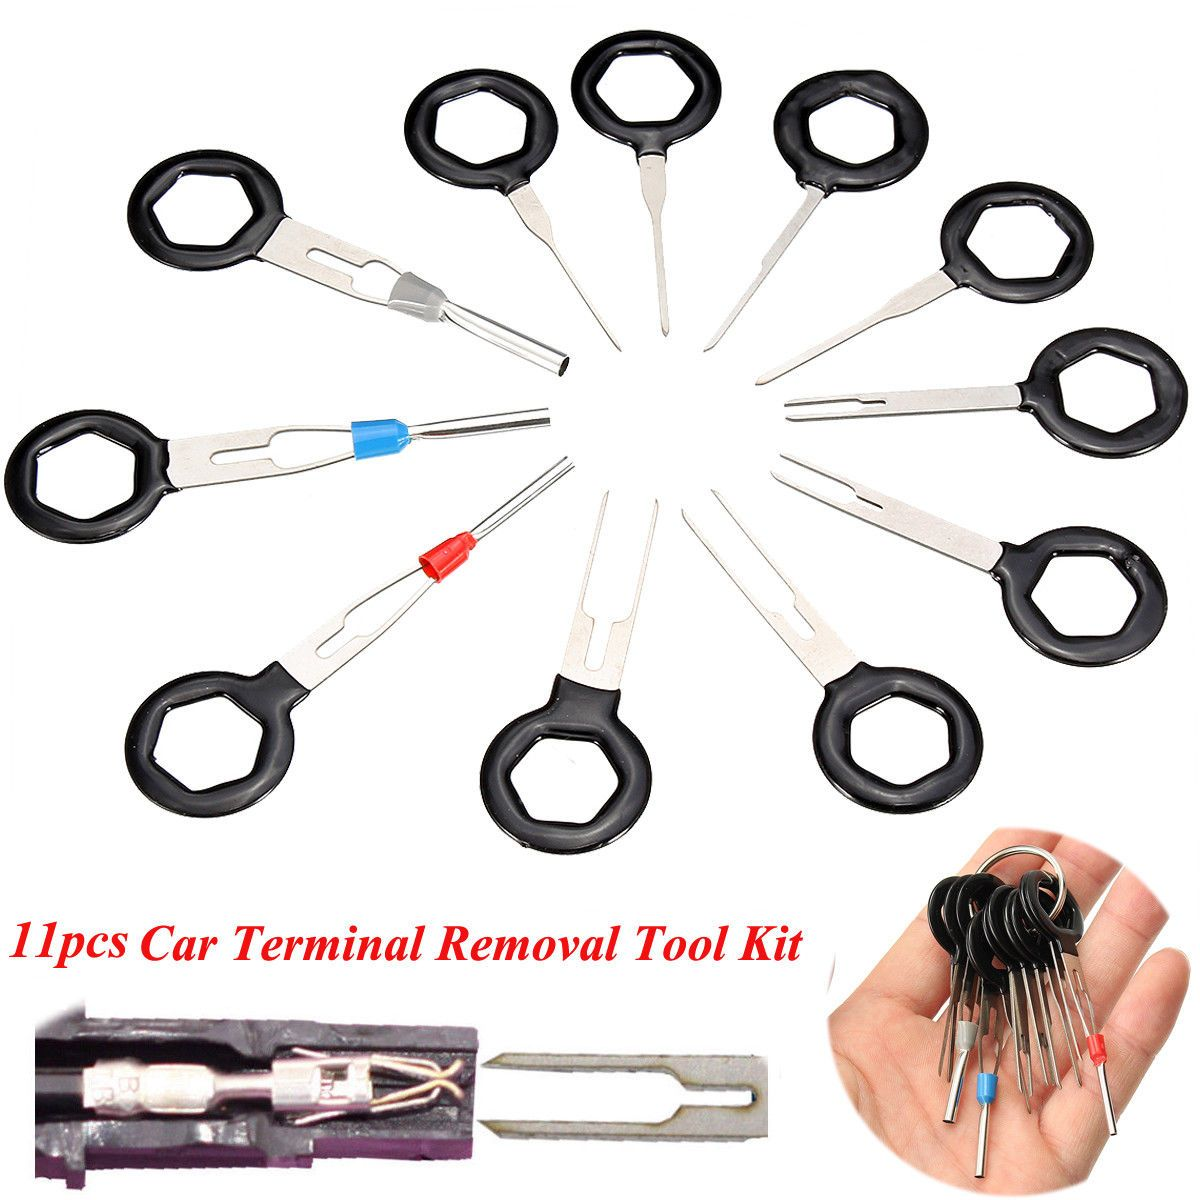 Tire Repair 11Pcs/Set Terminal Removal Tools Car Electrical Wiring Crimp Connector Pin Extractor Kit Back Needle Remove Tool Set